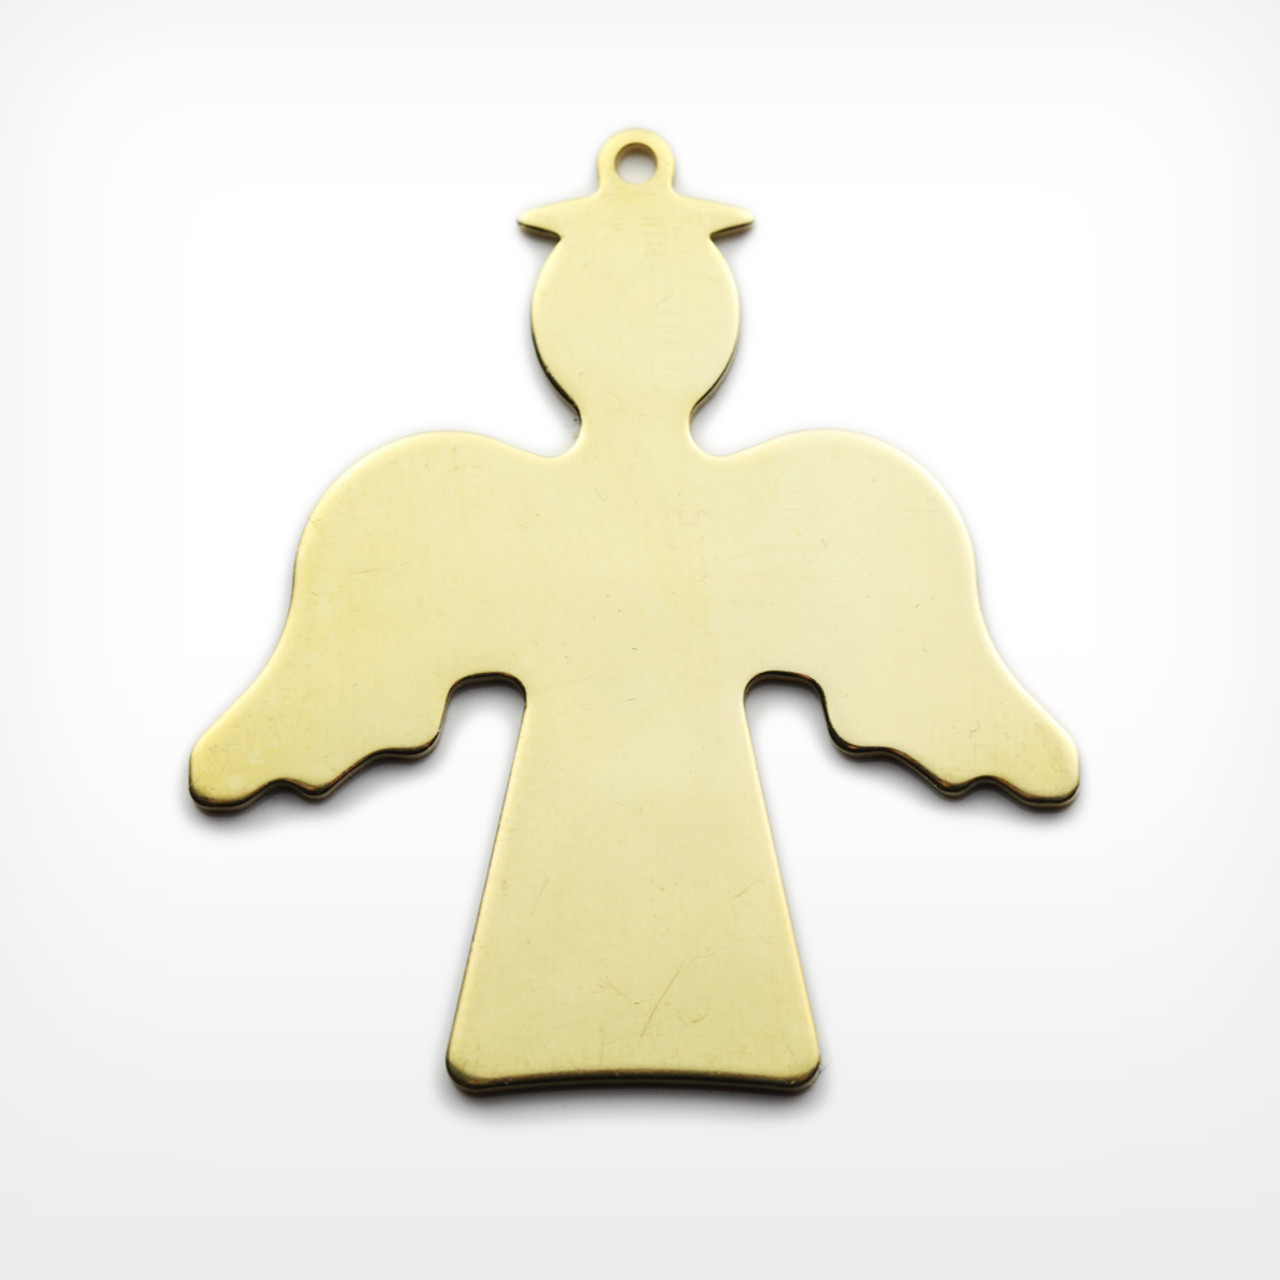 Brass Angel, with lug - Pack of 10 (440-BR)